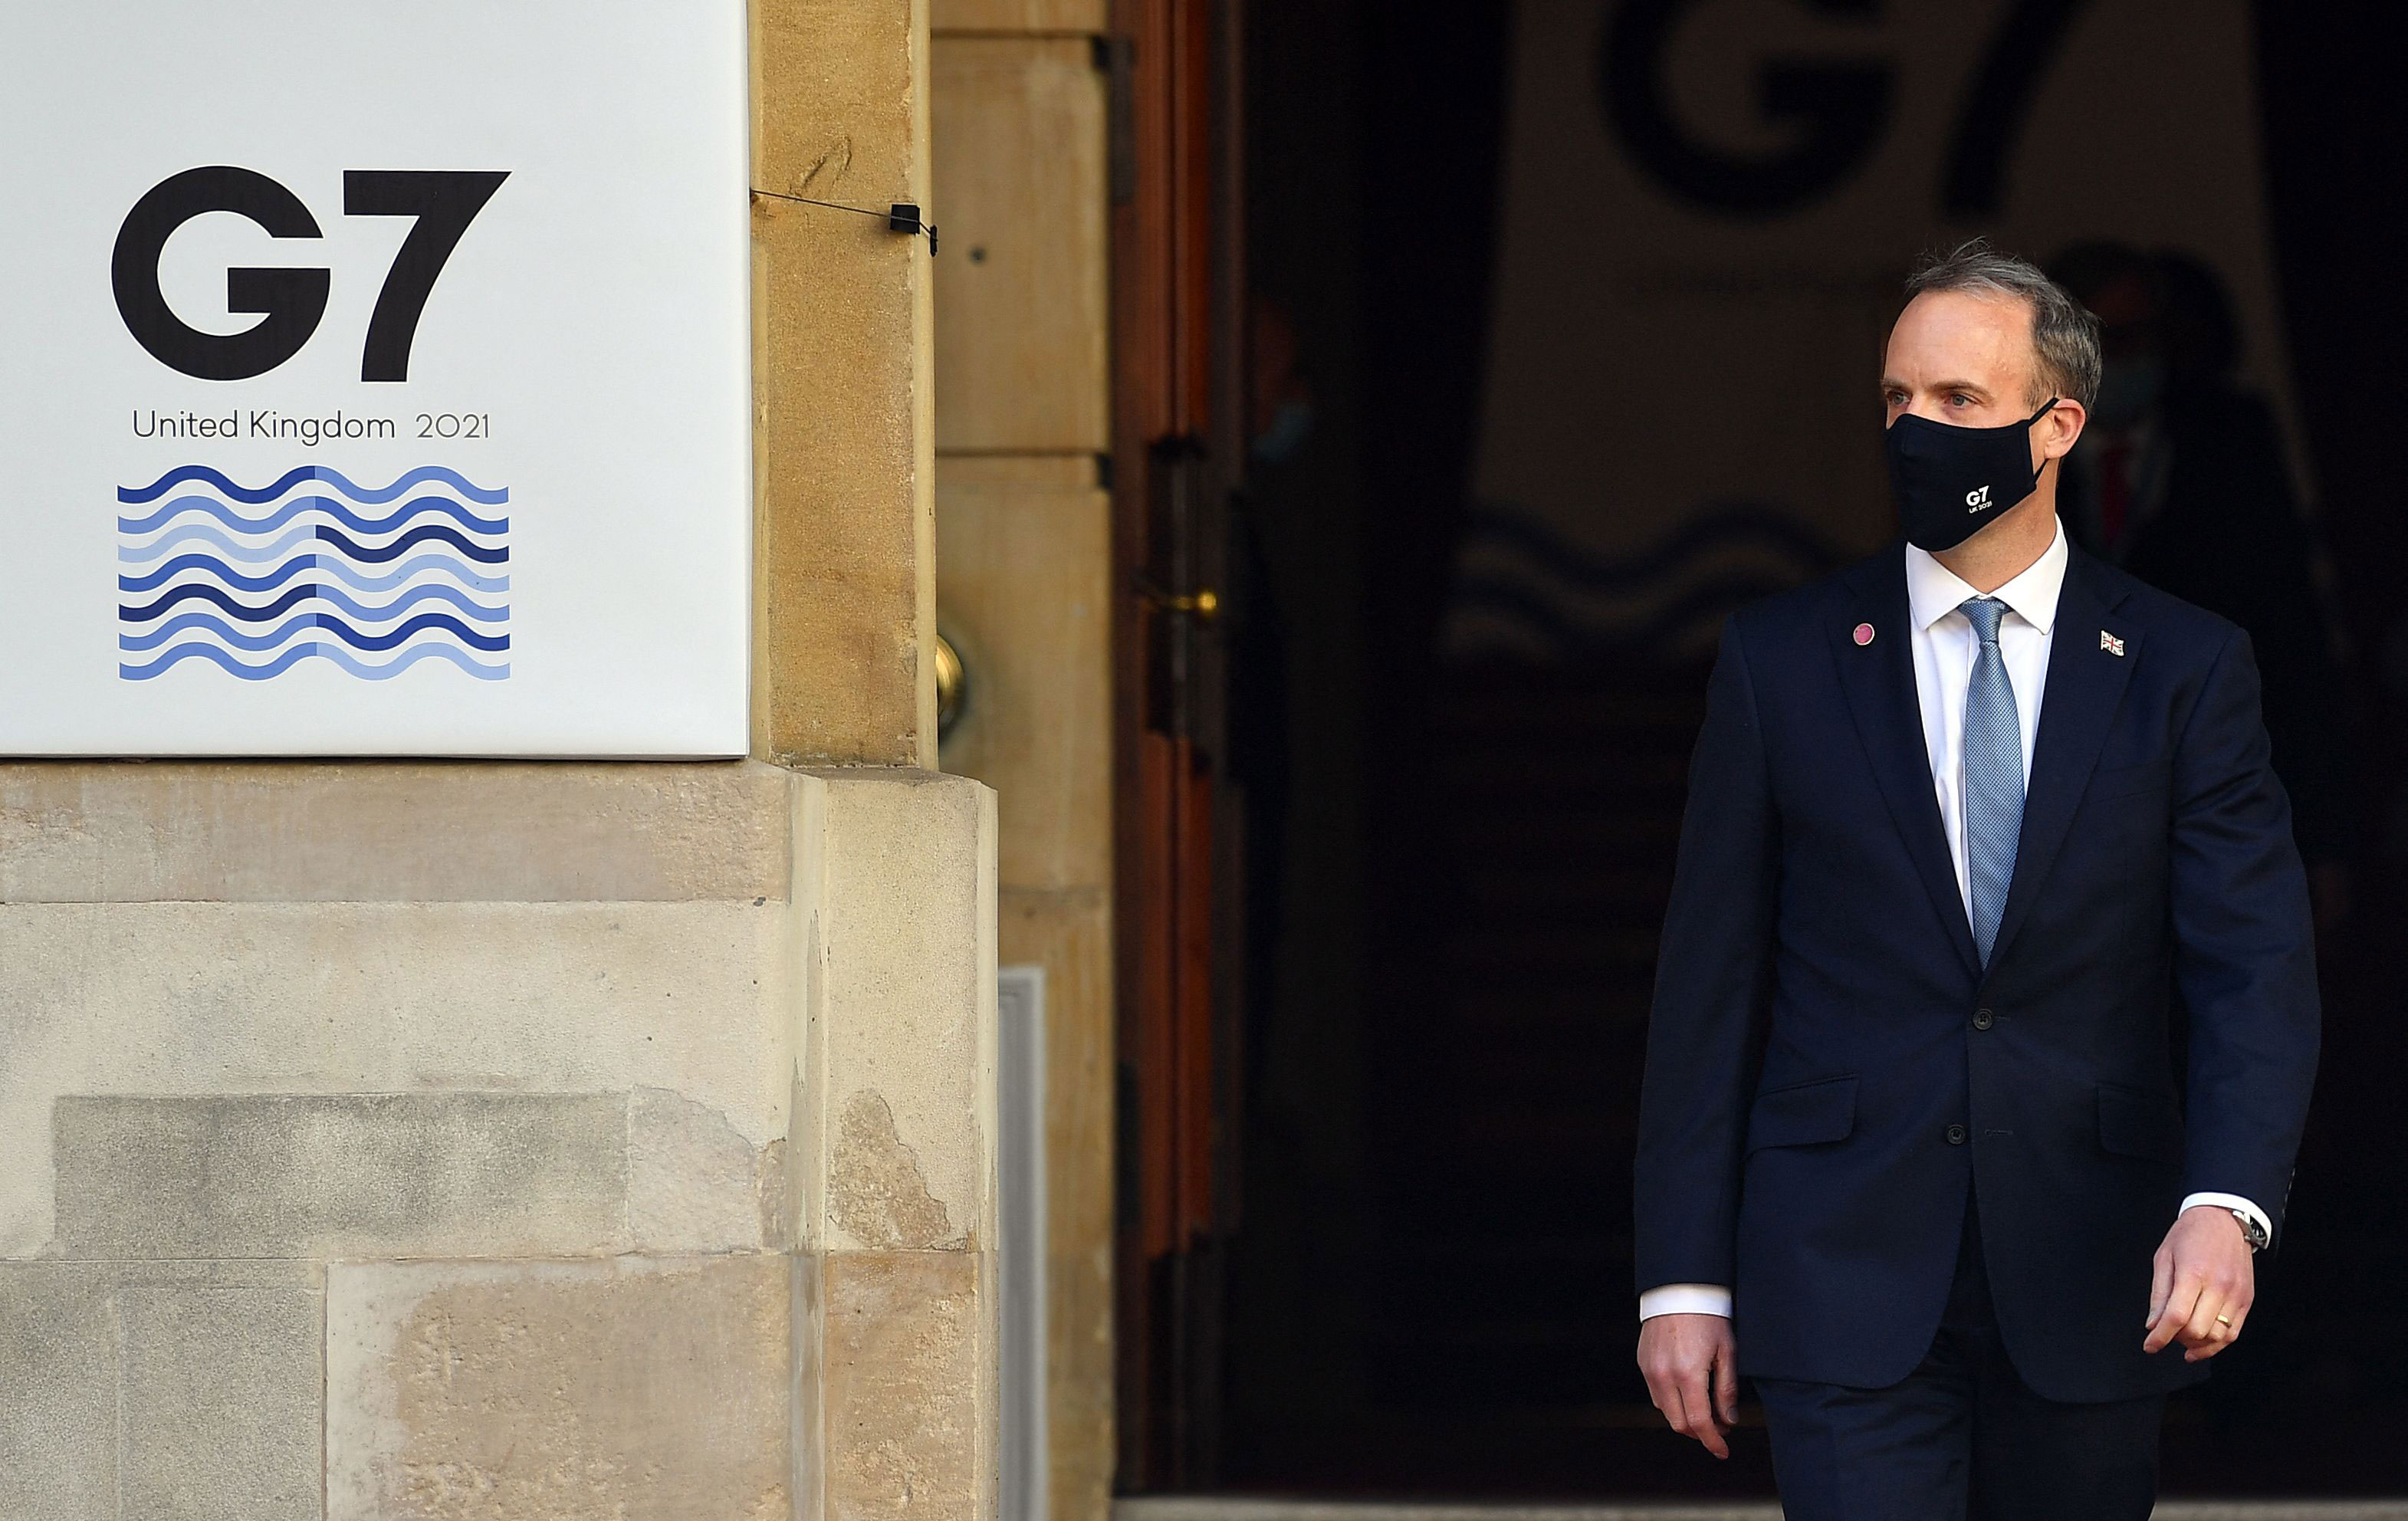 British Foreign Secretary Dominic Raab waits to greet participants at the G7 foreign ministers' meeting in London on May 5.